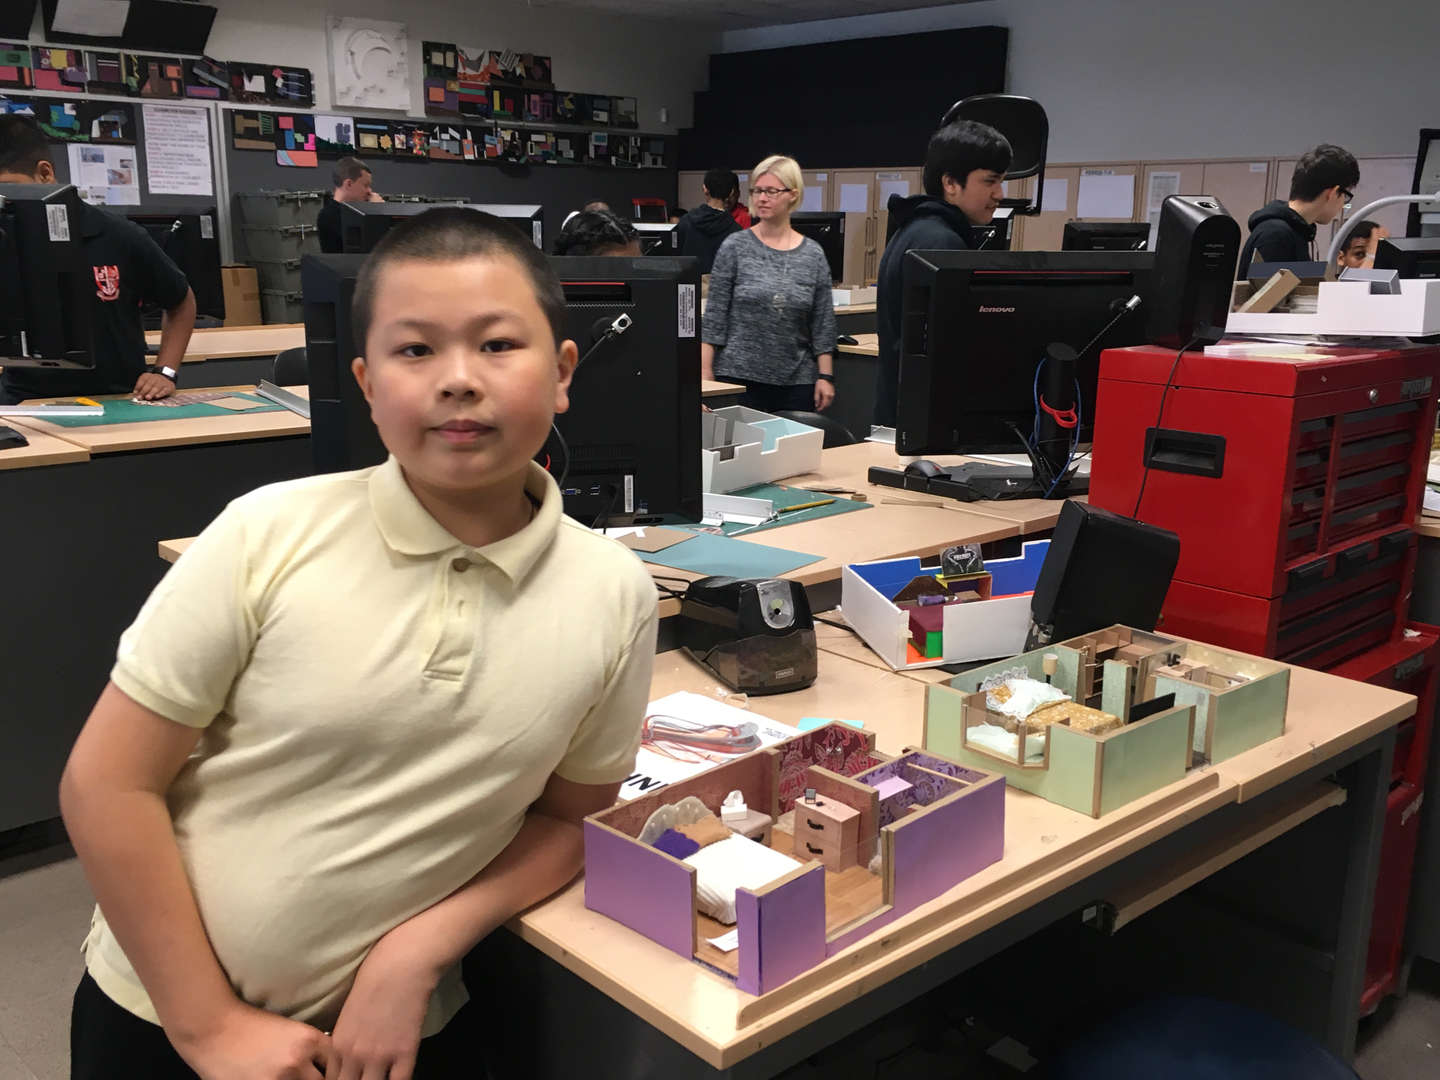 A student poses next to a diorama of a house